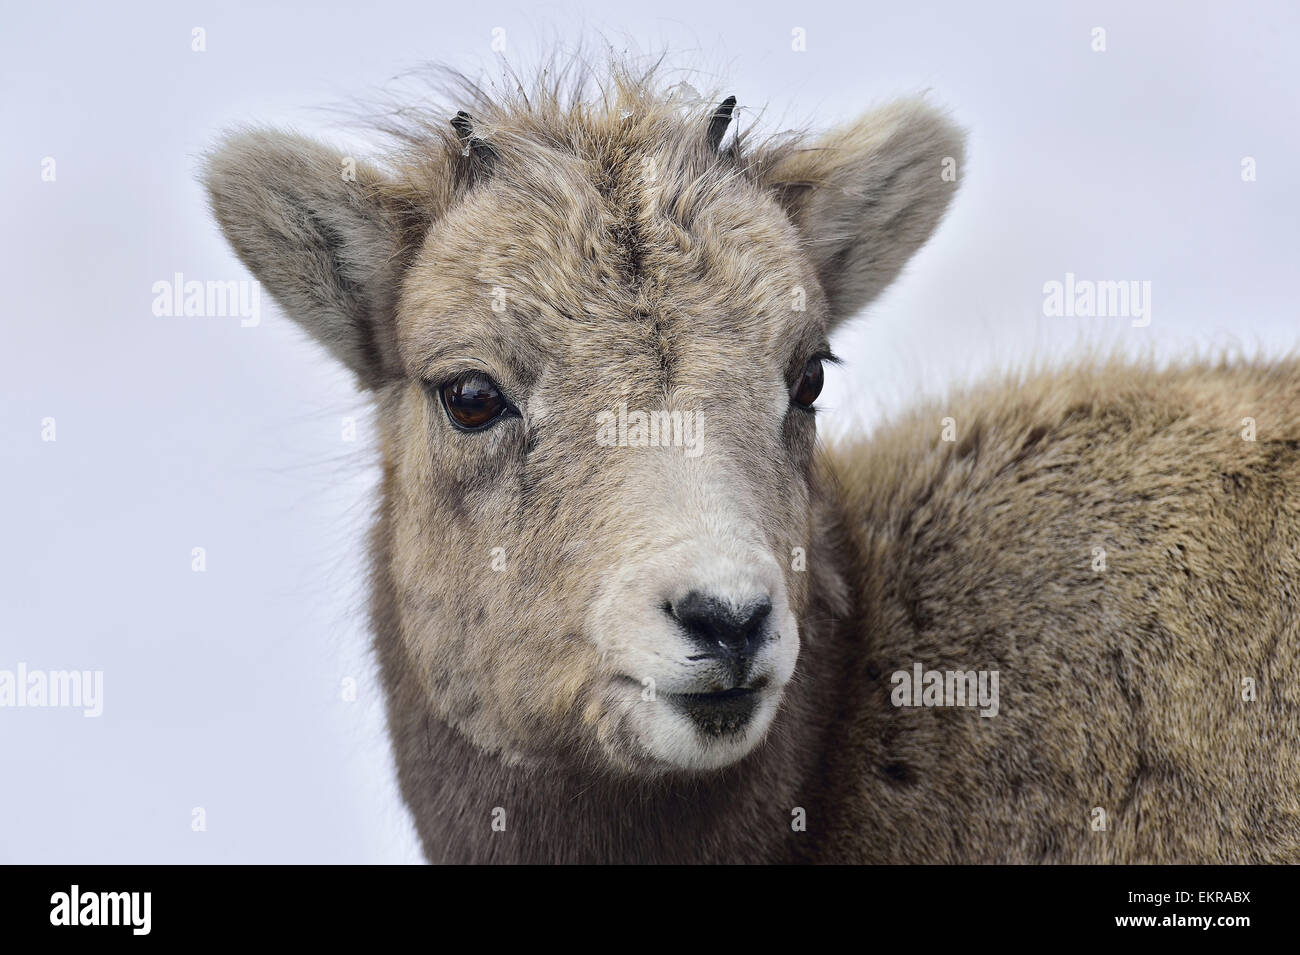 A close up animal portrait of a baby Bighorn Sheep, - Stock Image